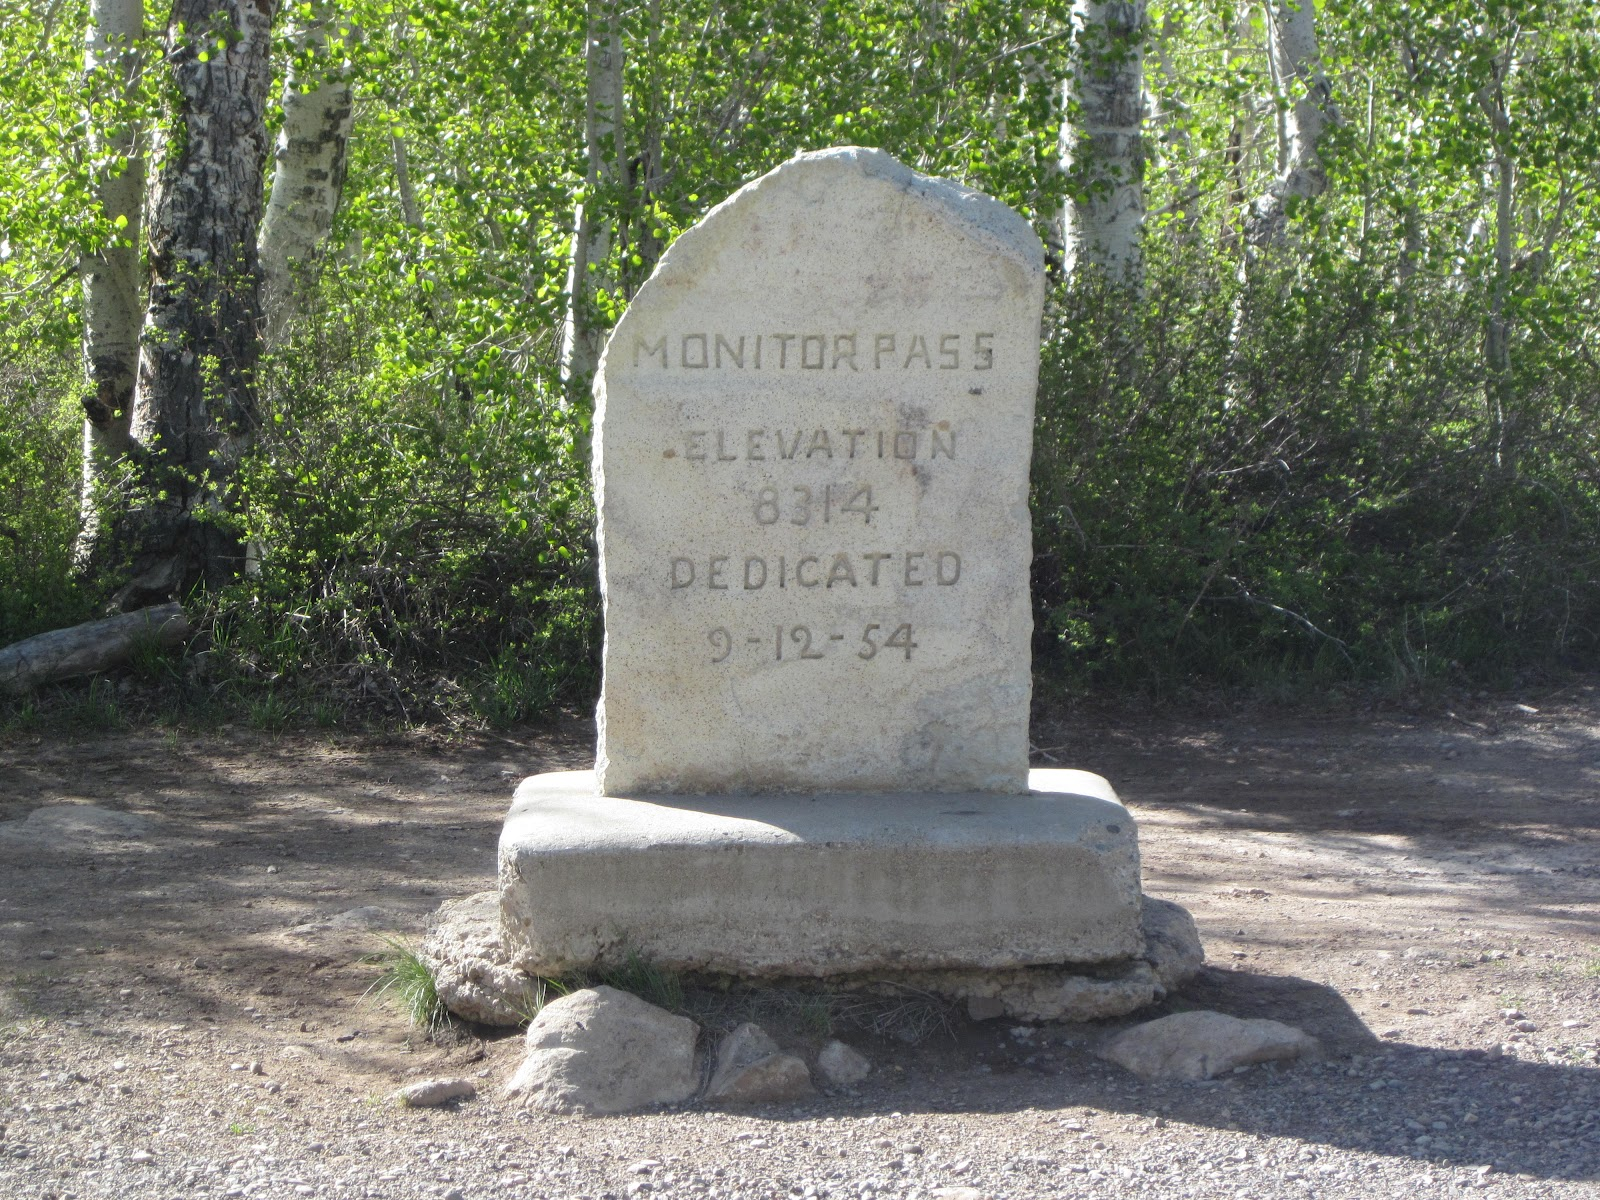 Bicycle climb of Monitor Pass East  - Summit Marker and monument at pass